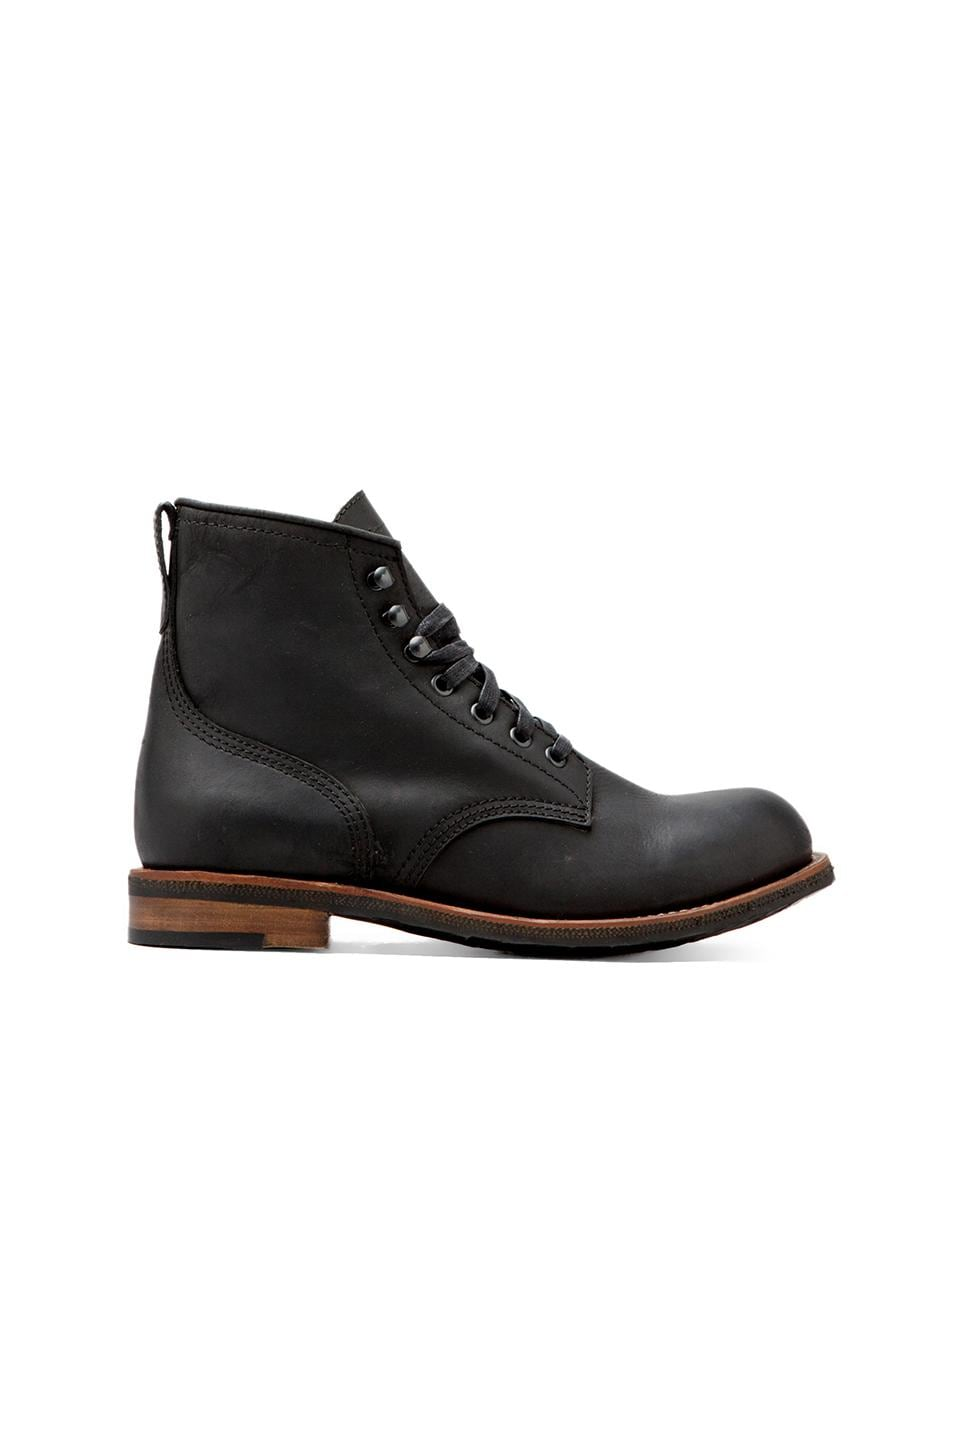 COMUNE Reed Classic Utility Boot in Black